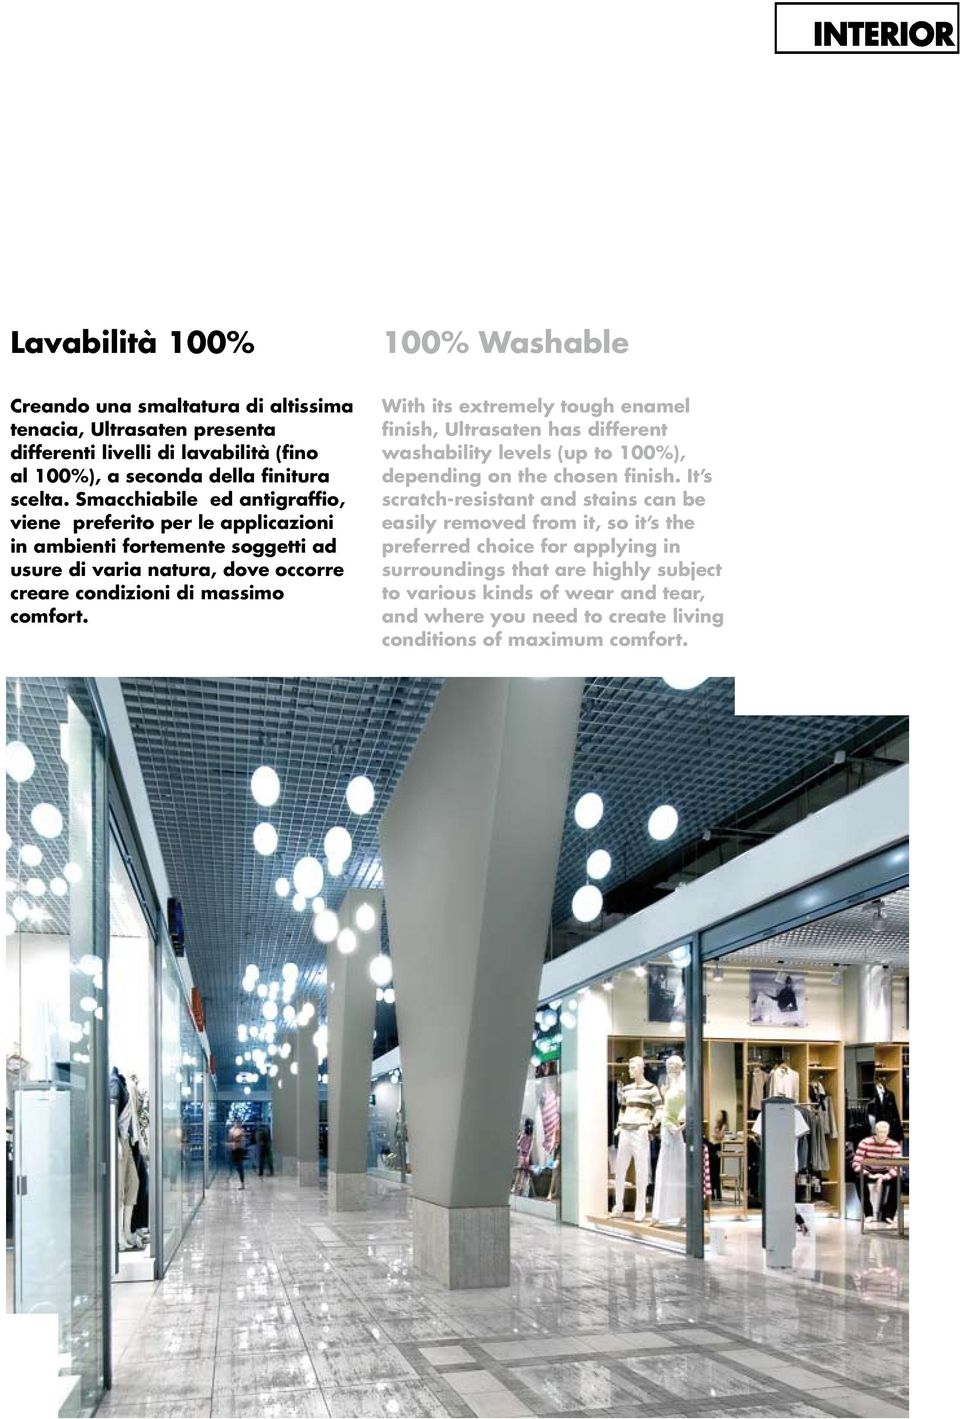 With its extremely tough enamel finish, Ultrasaten has different washability levels (up to 100%), depending on the chosen finish.